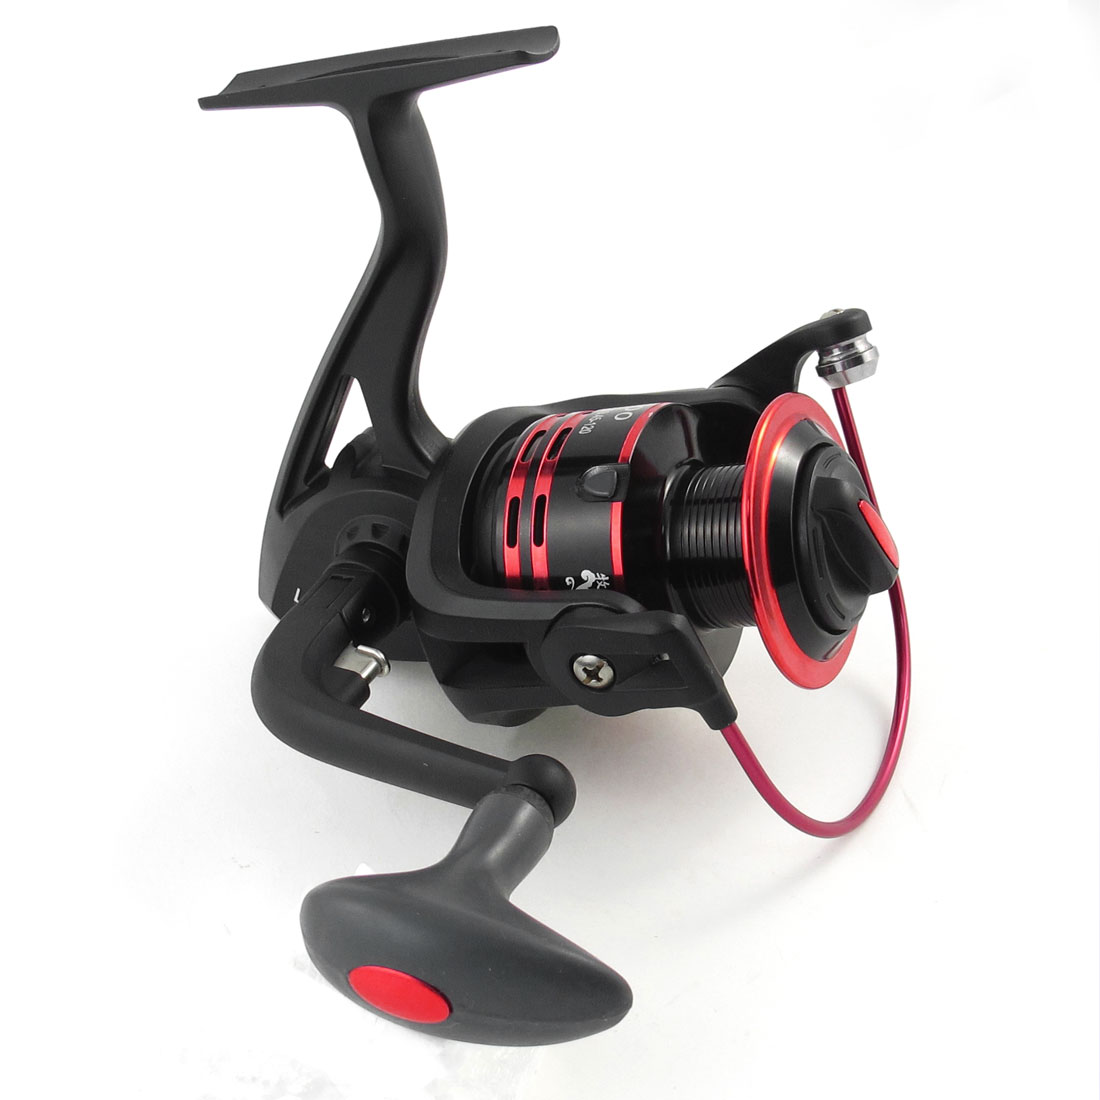 Folding Grip 4.7:1 Gear Ratio 11 Ball Bearing Fishing Spinning Reel Red Black